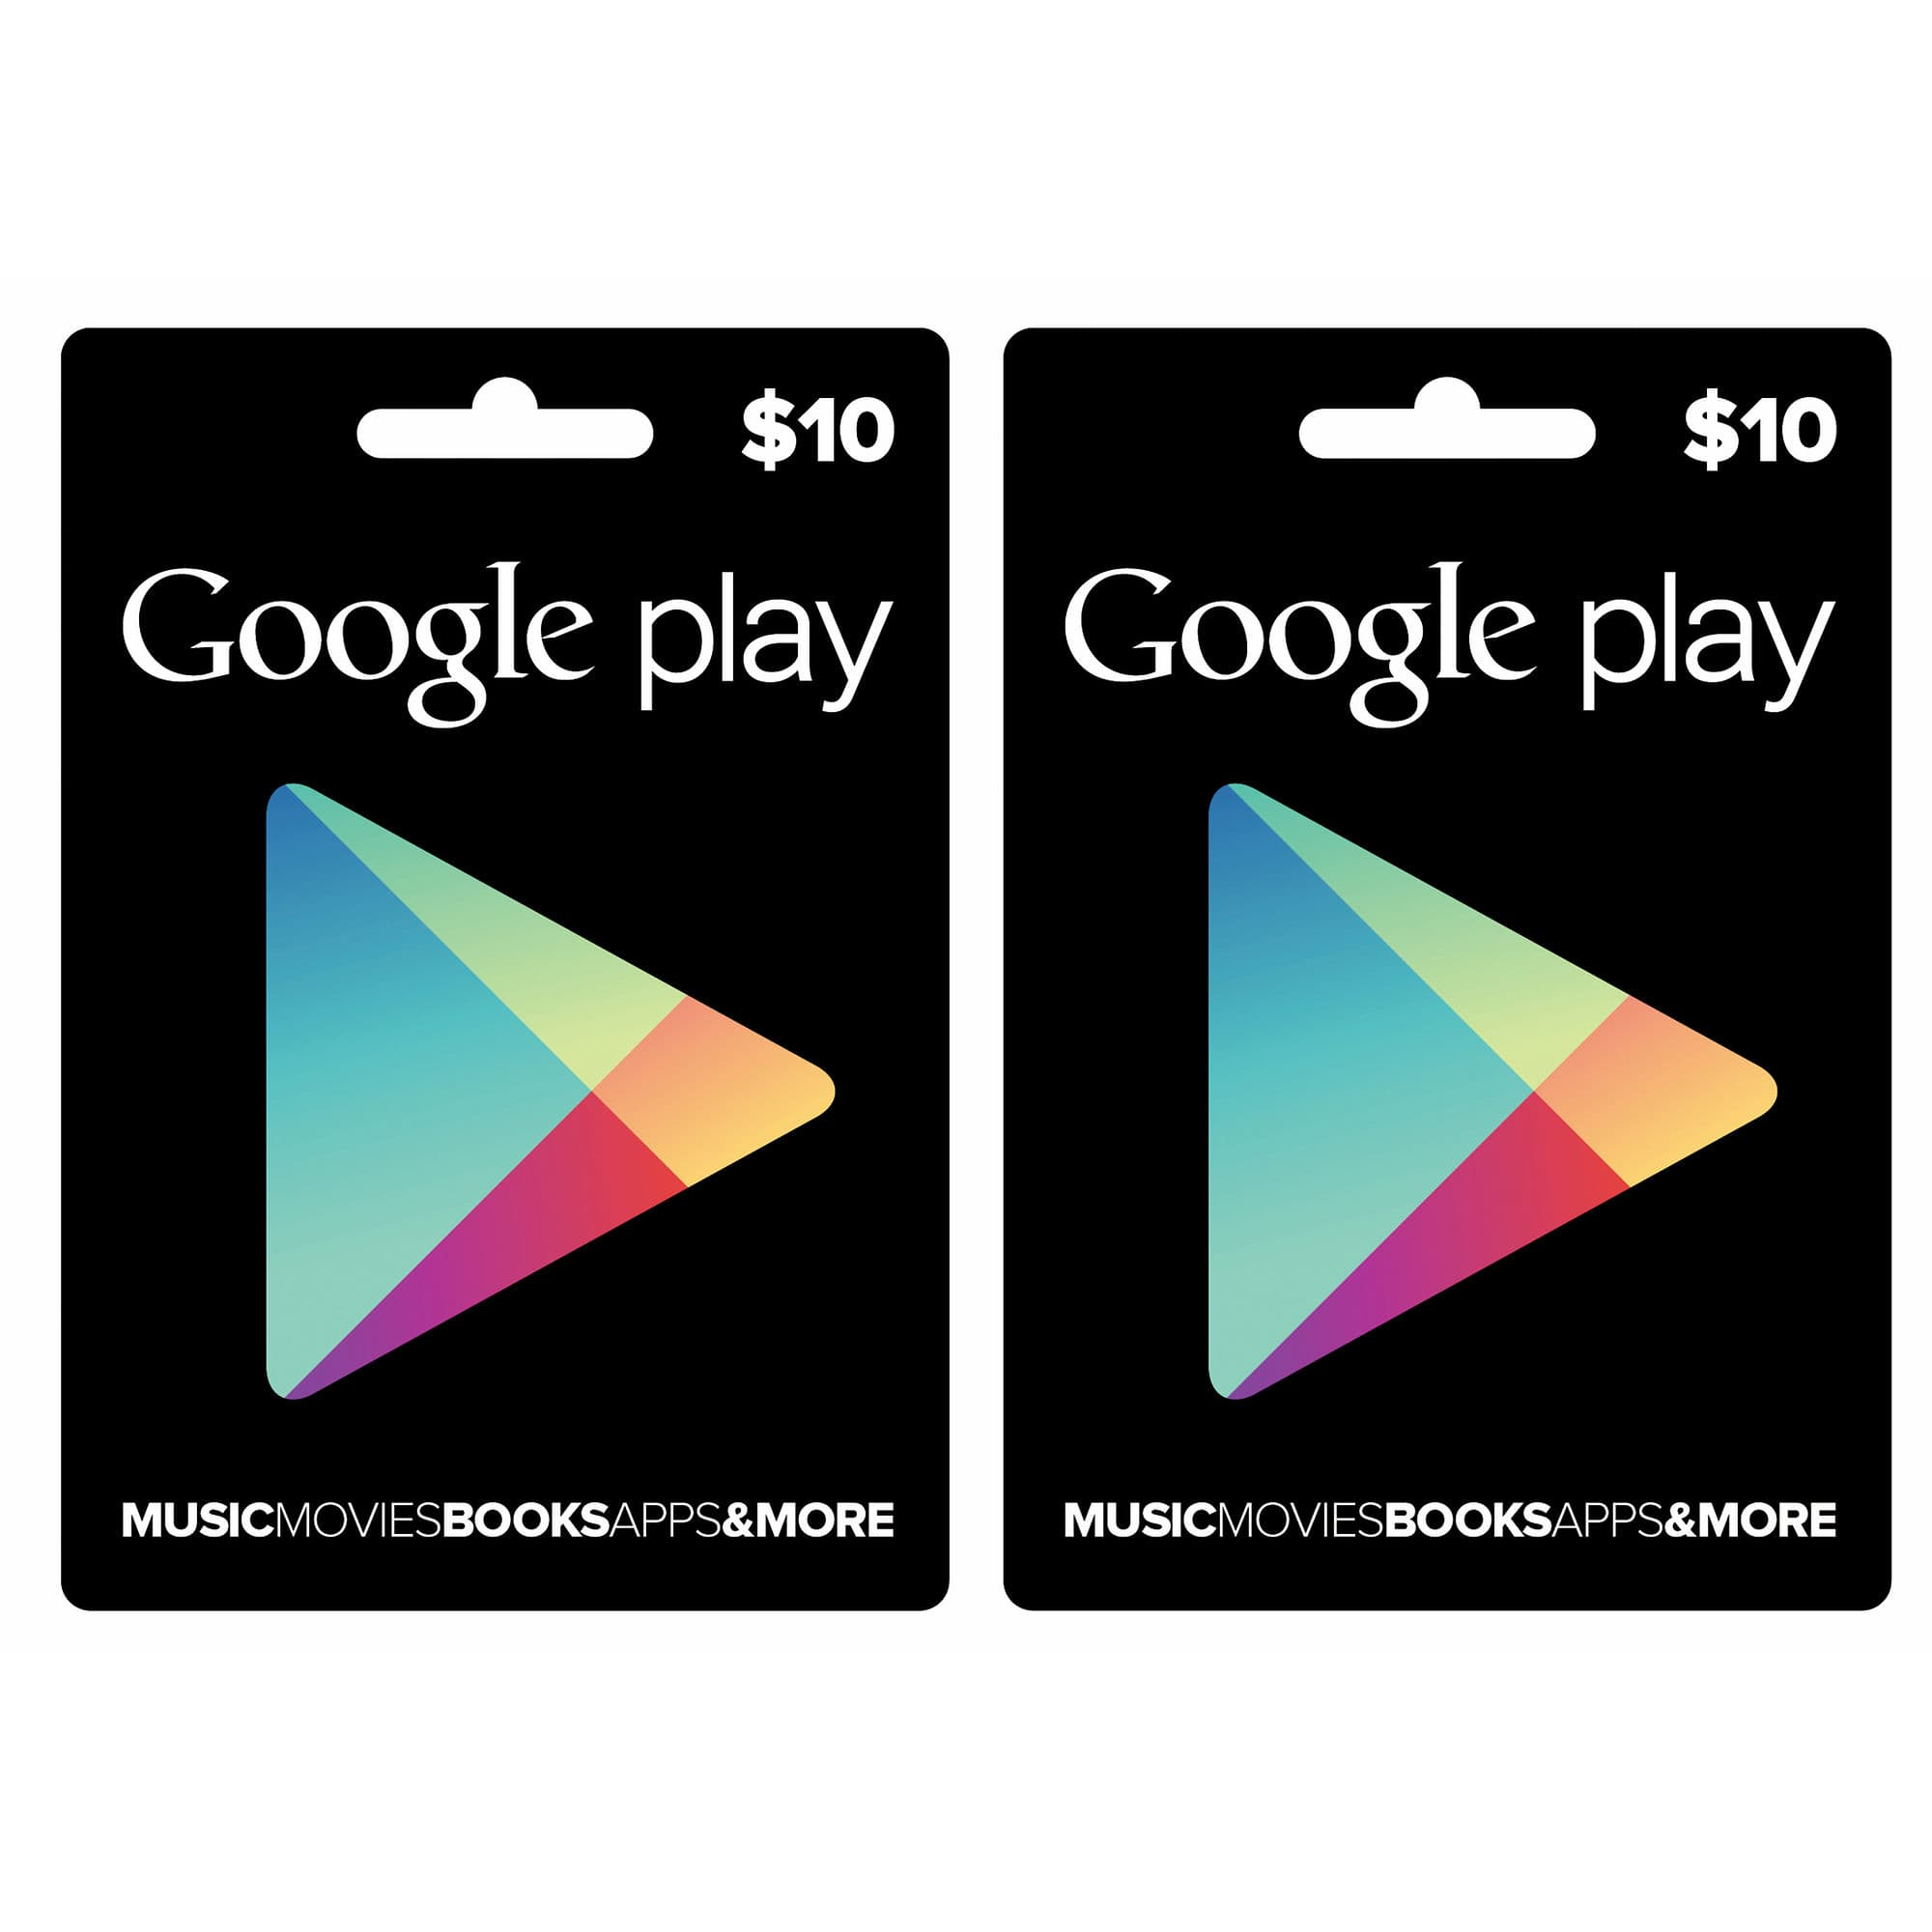 $20 (2-Pack of $10) Google Play Gift Card $14.49 + Free Shipping @ BJs Wholesale Club